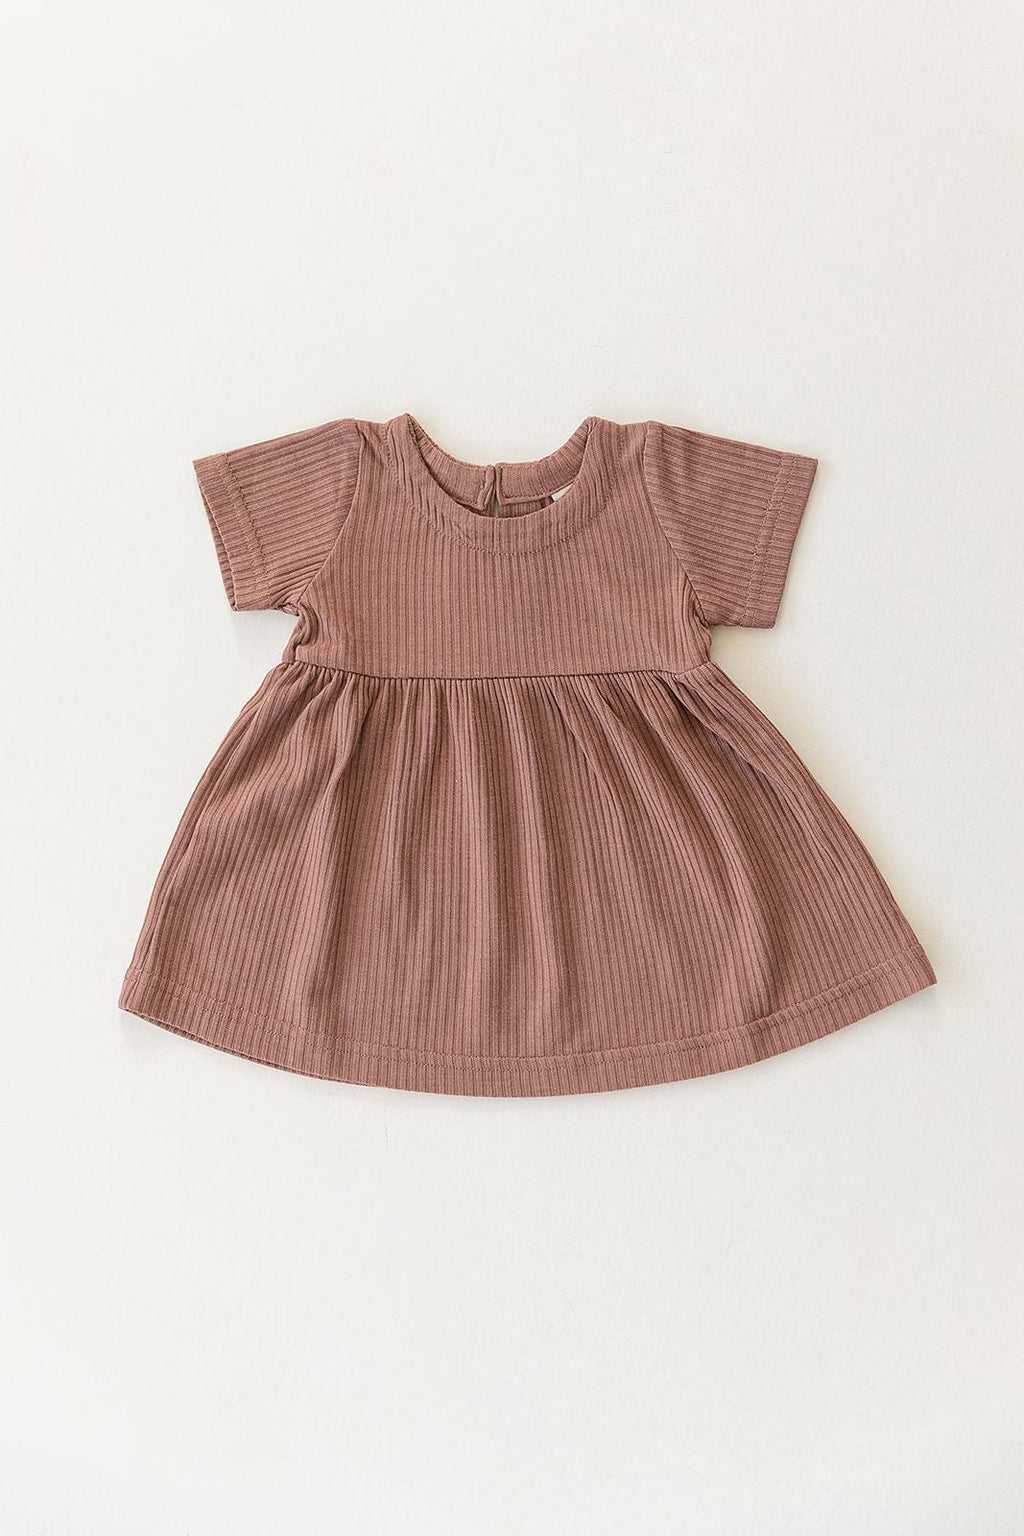 Ribbed Dress - Dusty Rose (4613416943703)